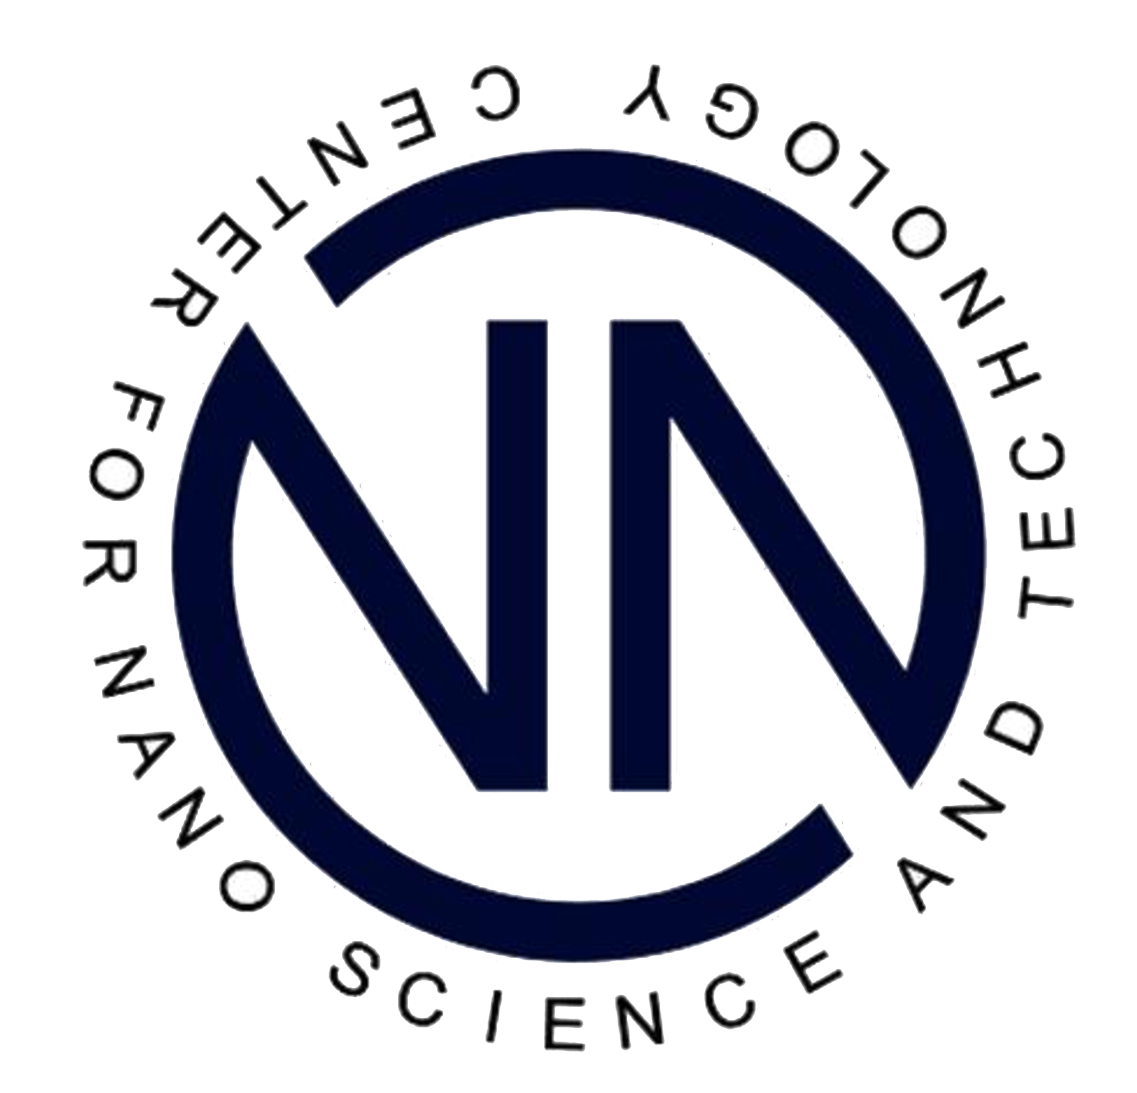 Center for Nano Science and Technology